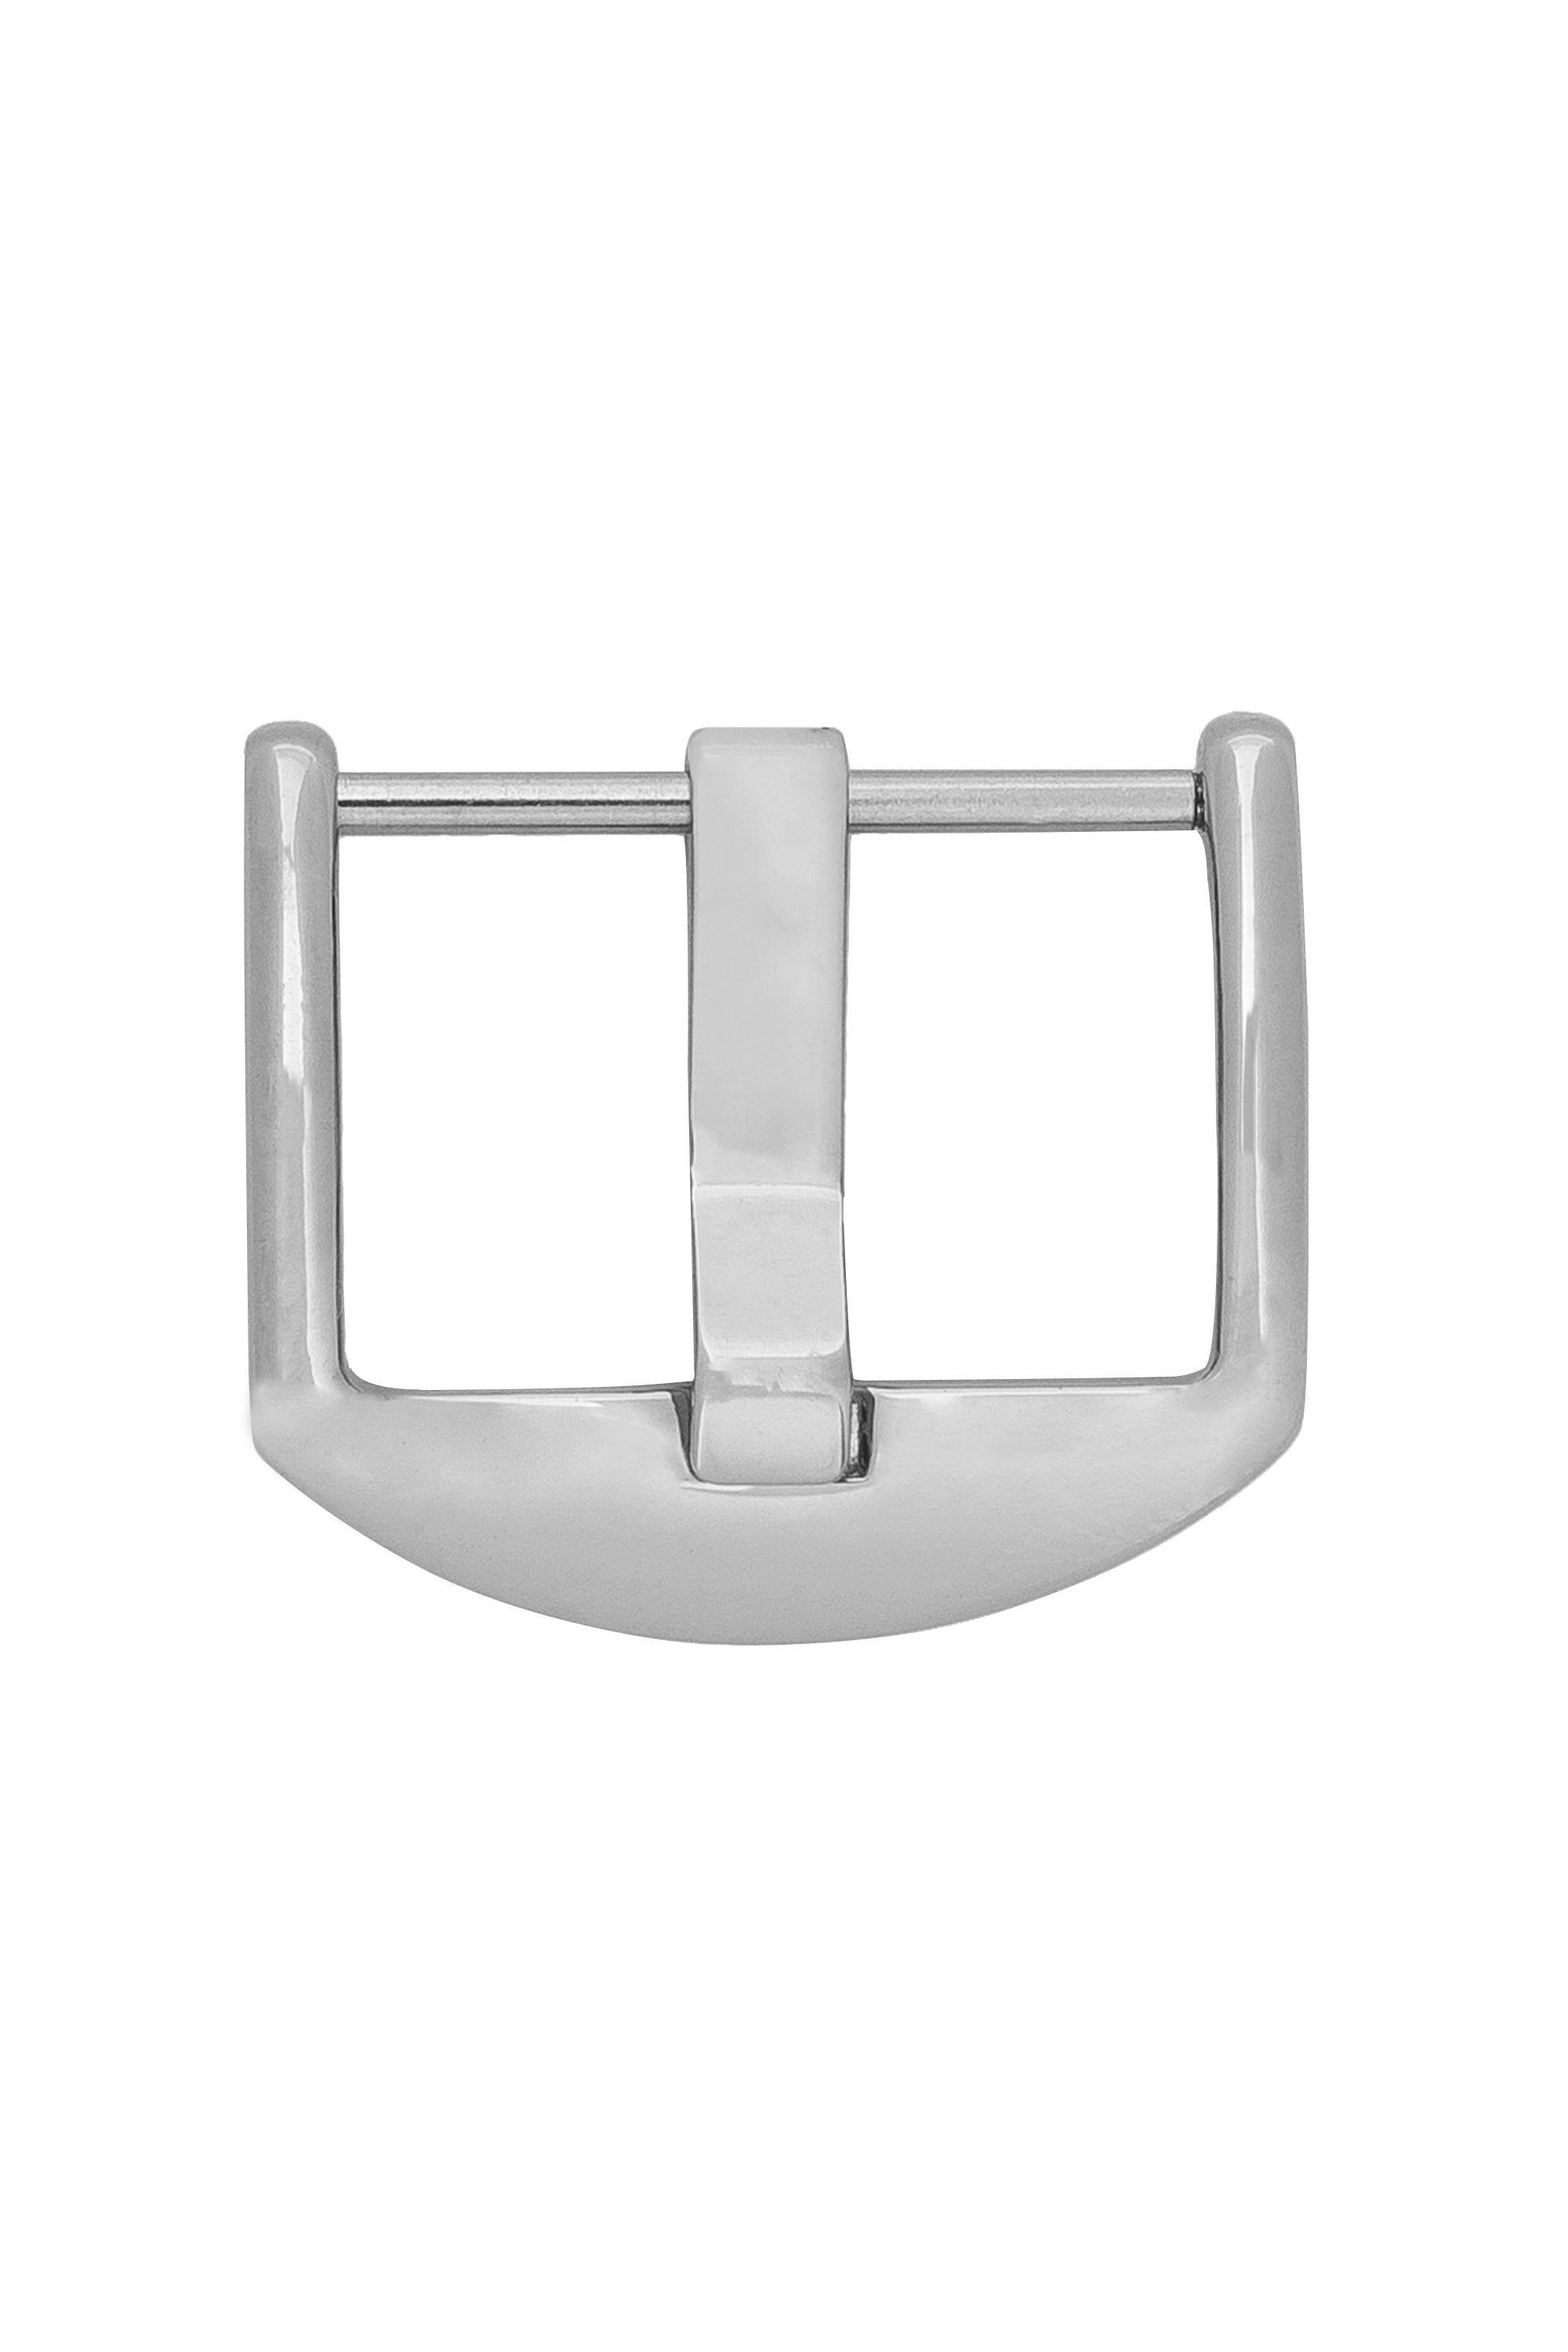 POLISHED ARD Screw-in Buckle